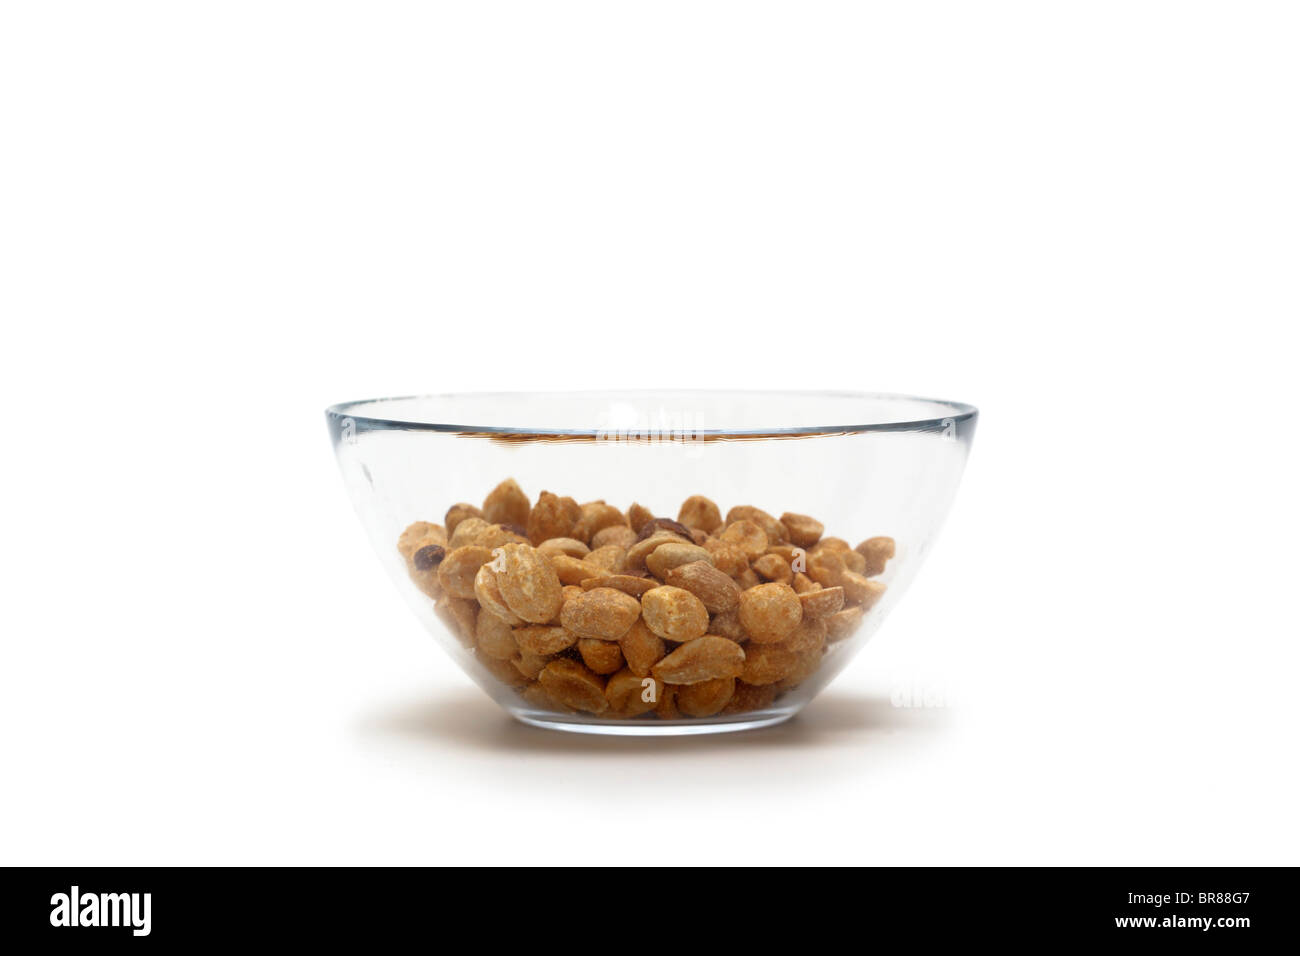 Roasted shelled peanuts in a glass dish.  An unhealthy snack. - Stock Image